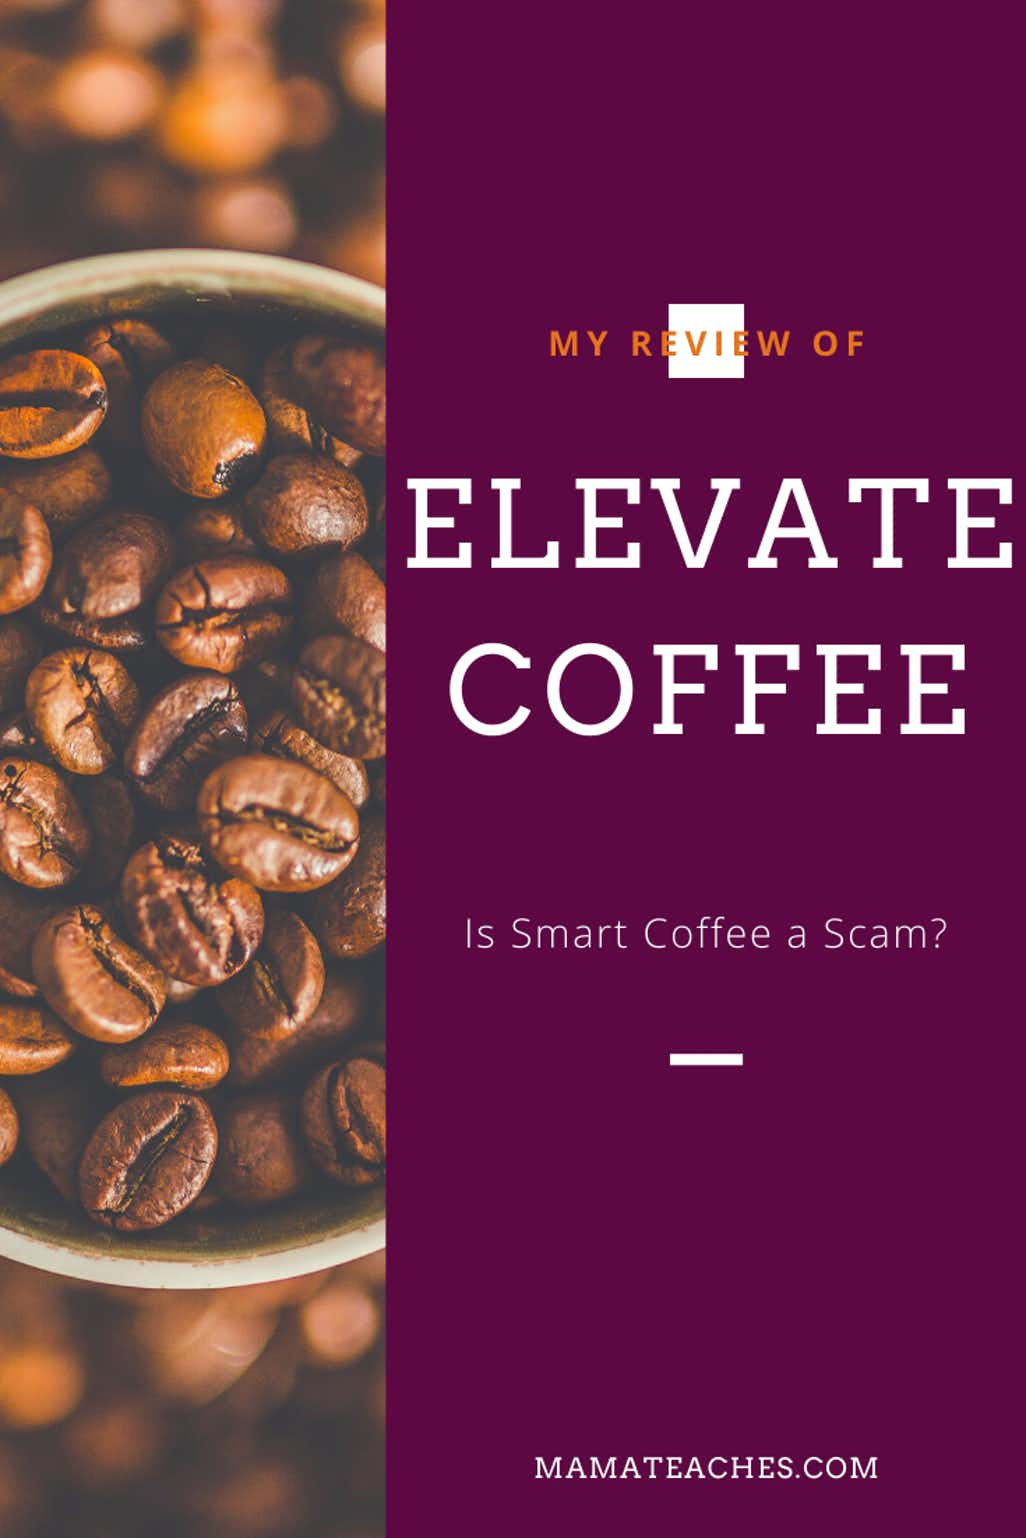 Is elevate coffee a scam? My review of smart coffee